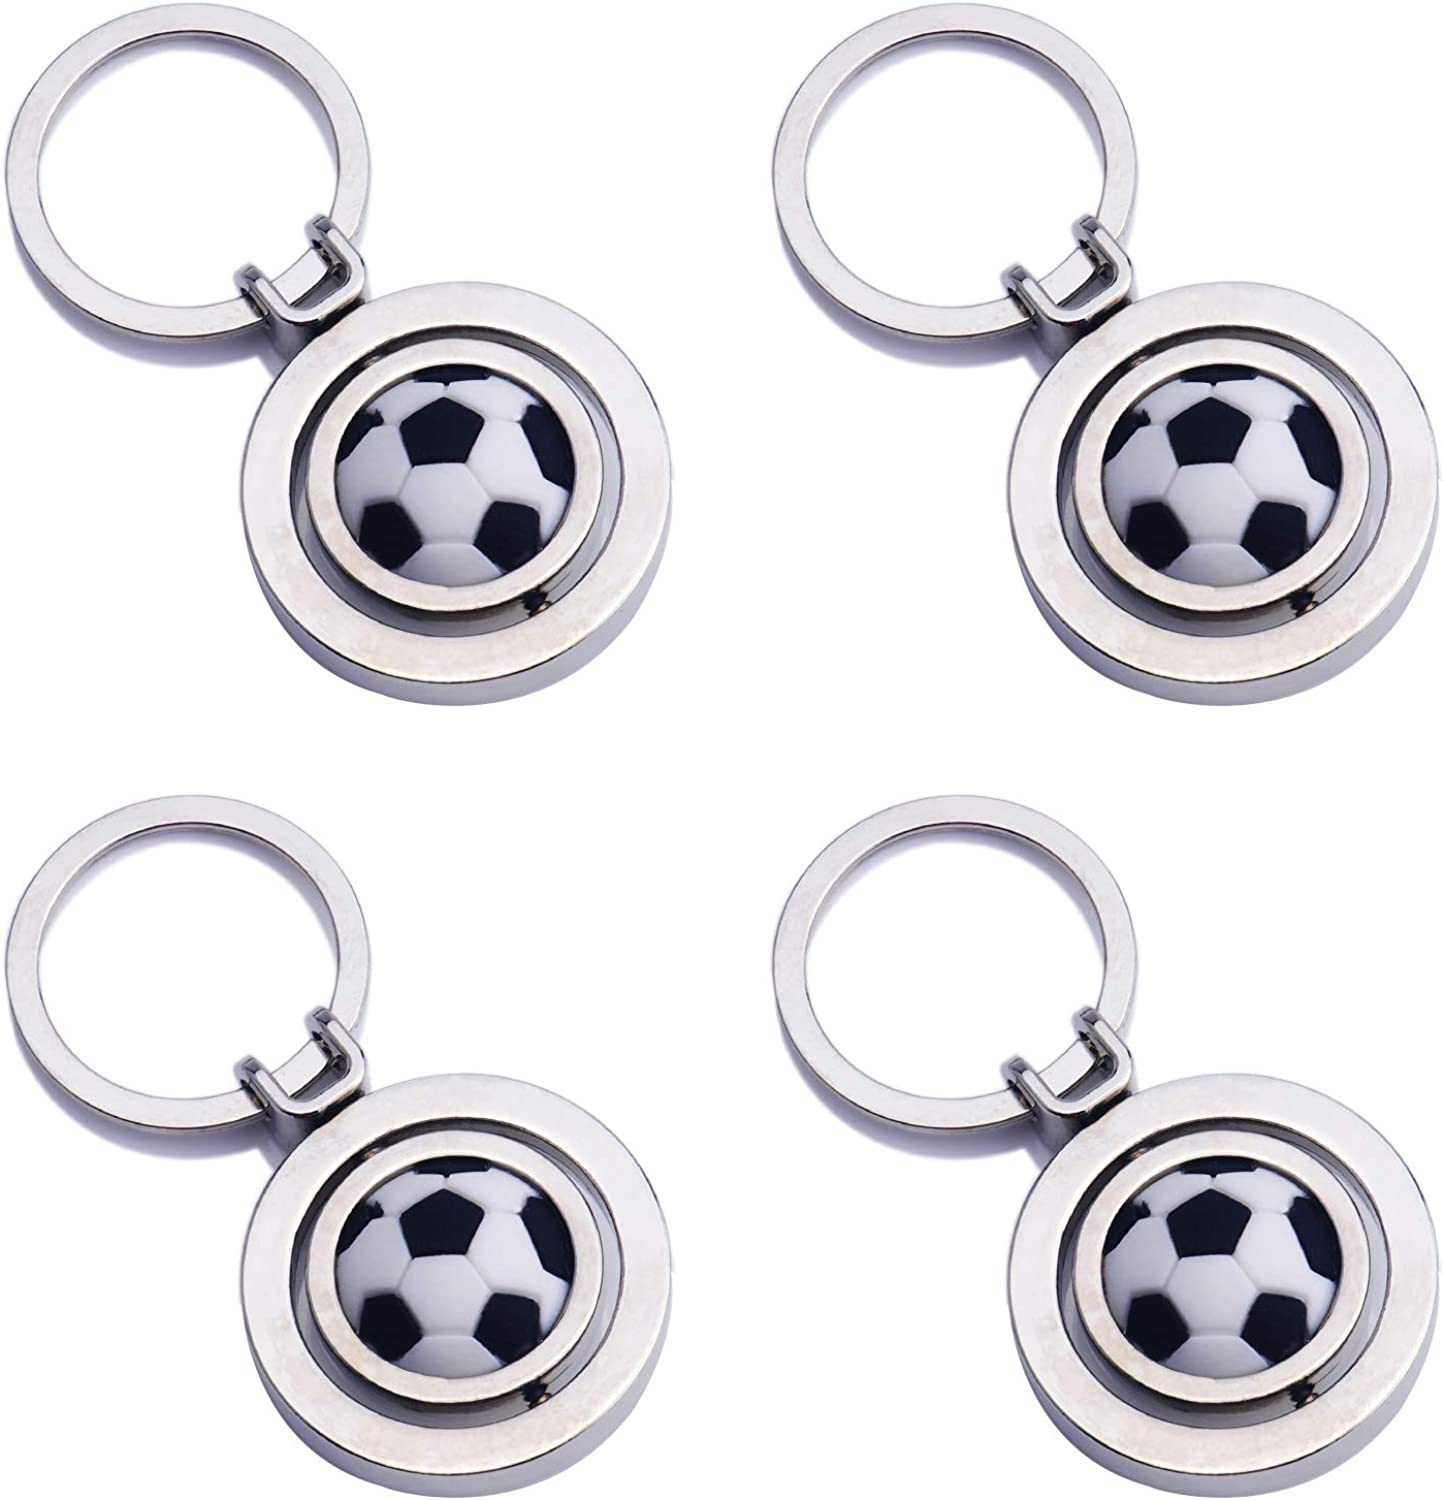 4 Pcs Stainless Steel Keychains, 3D Sports Keychains for Sport Theme Party and Birthday Party